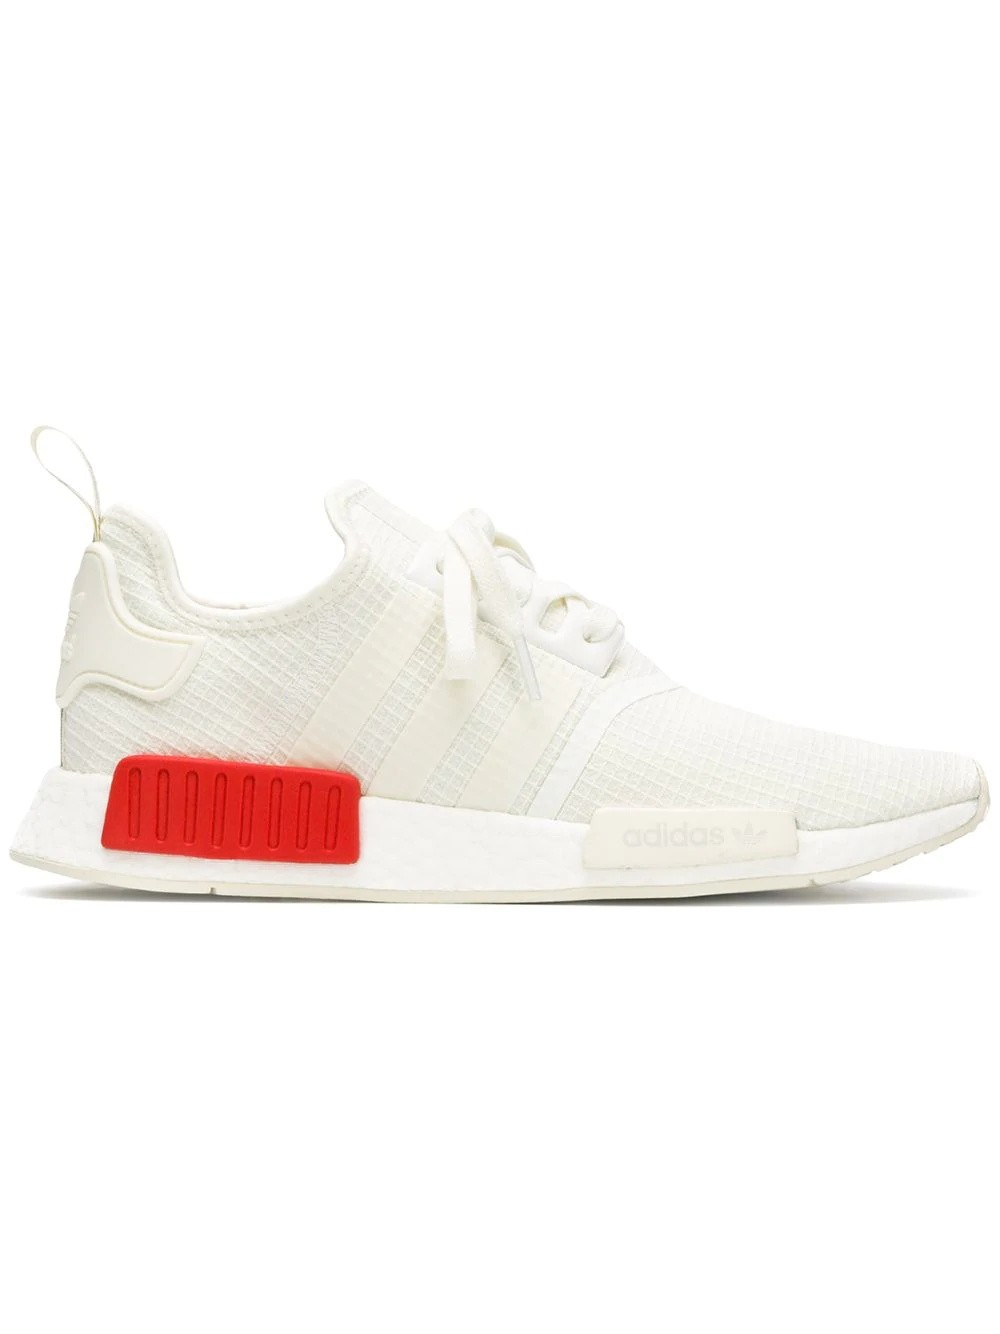 "NMD_R1 ""Rouge"" - Adidas - B37619 - Blanche/Rouge"